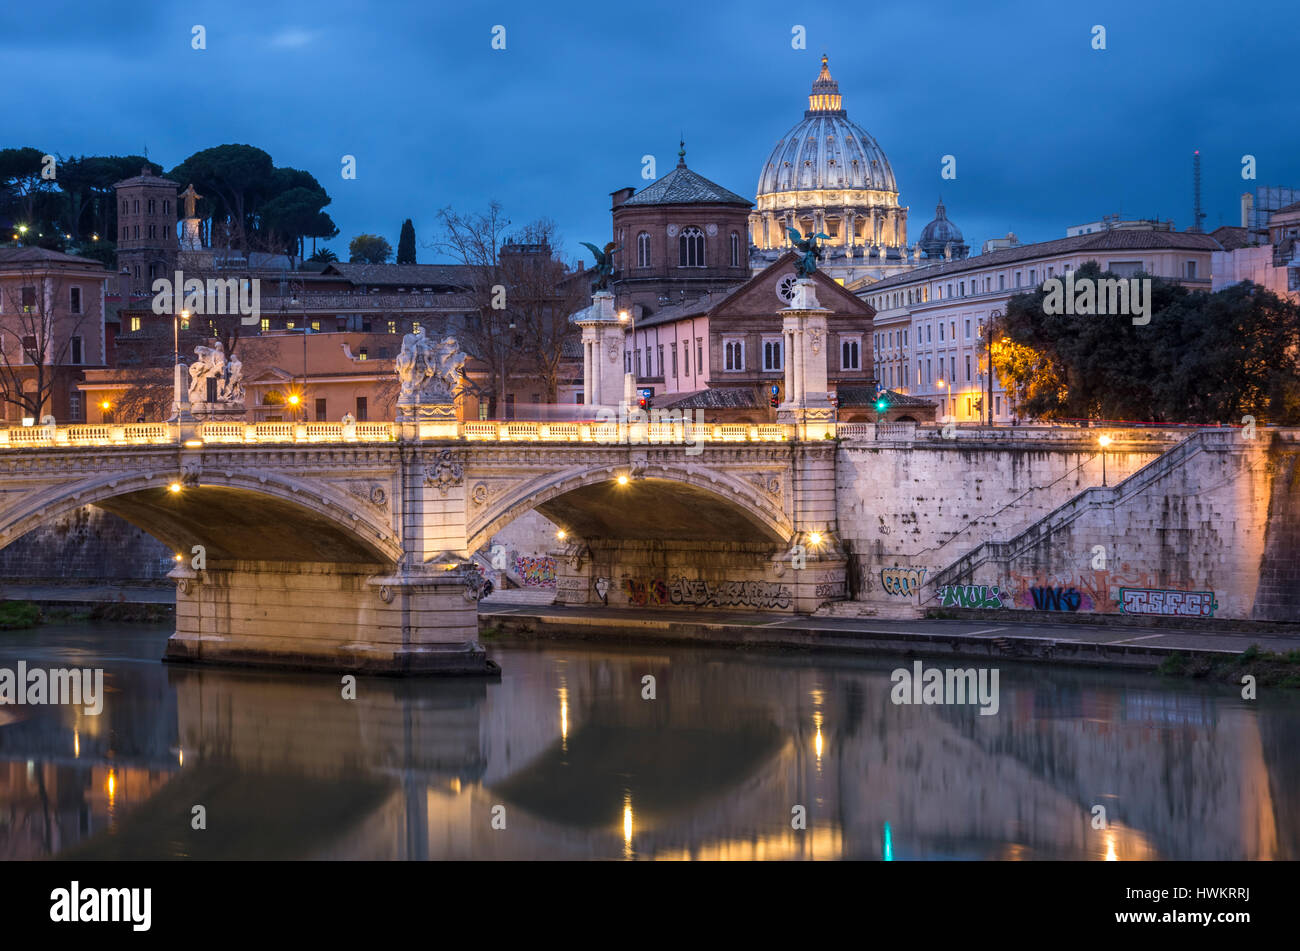 Tiber and St. Peter's Basilica in Rome. - Stock Image